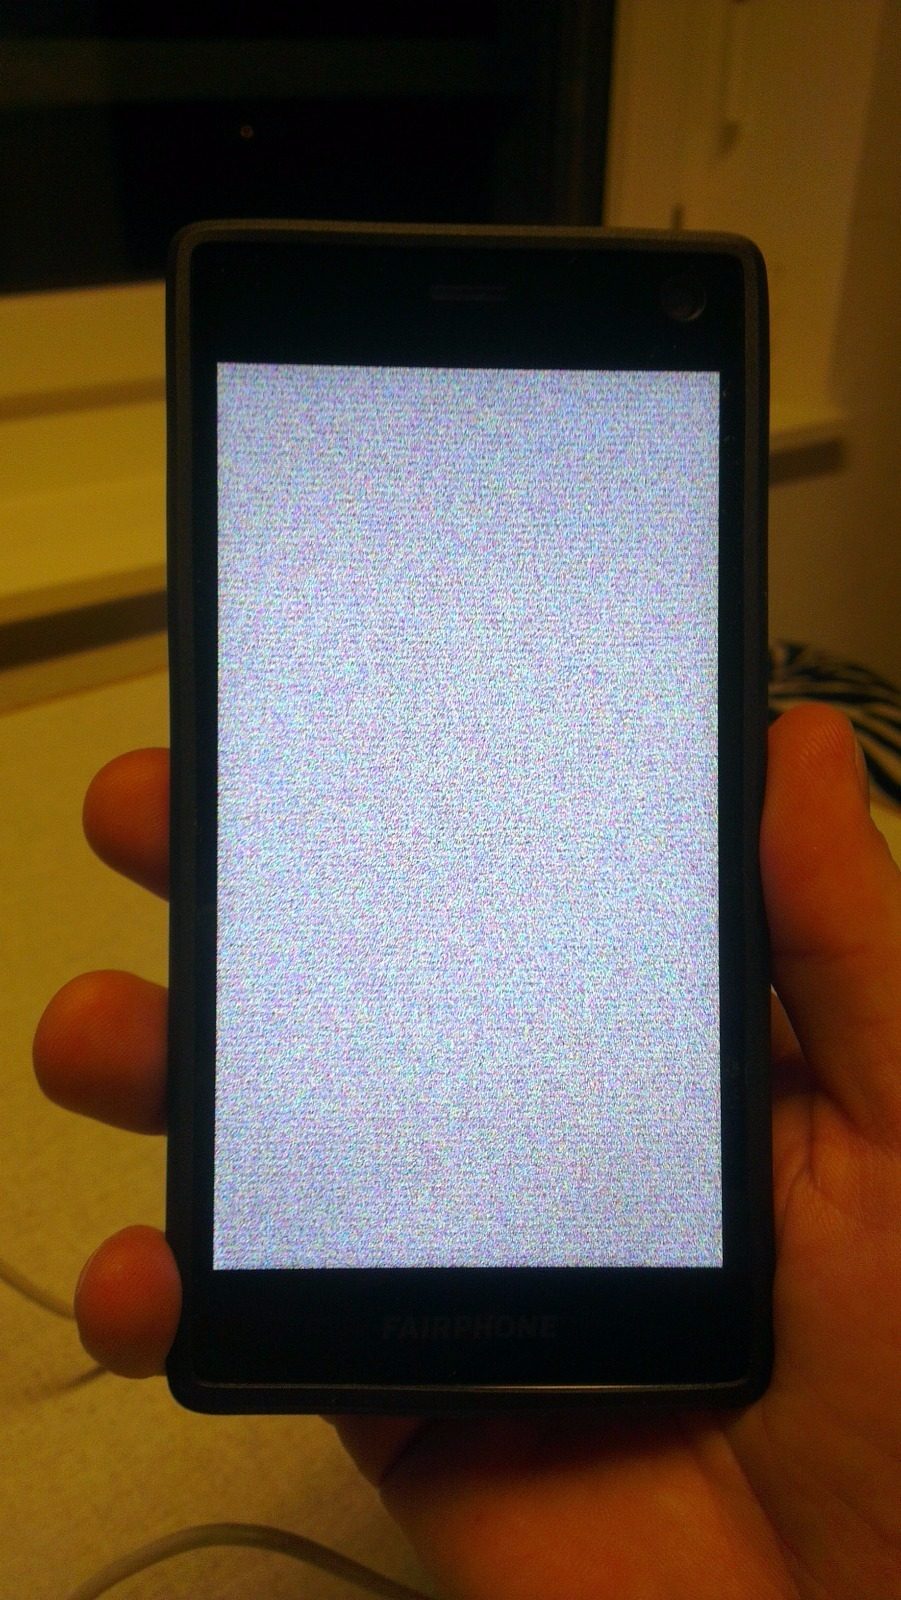 Screen blurs and lines appear - FP2 - Fairphone Community Forum